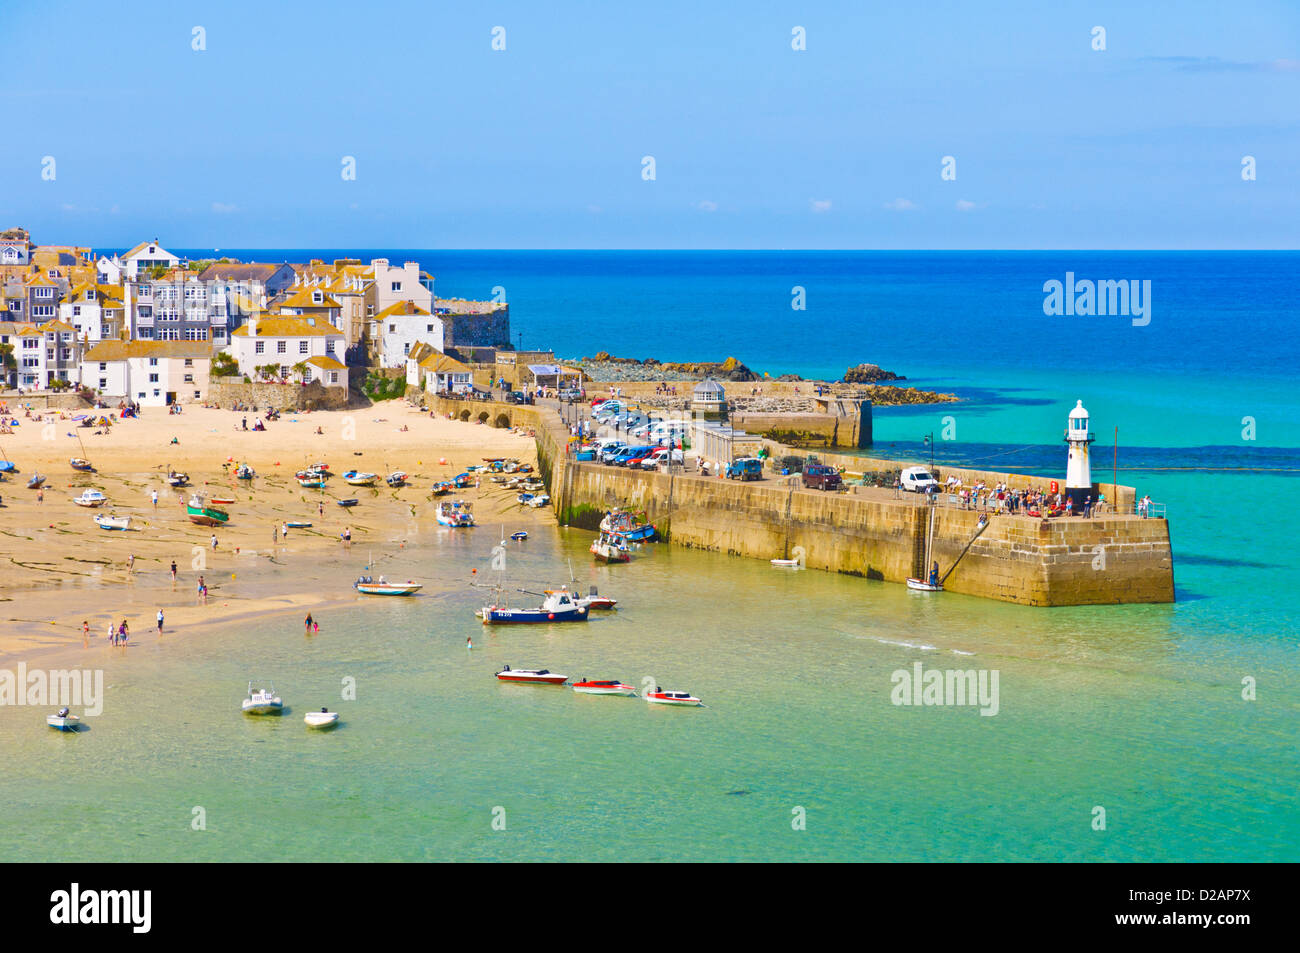 holidaymakers on the beach at The Island or St Ives Head St Ives Cornwall England GB UK EU Europe - Stock Image